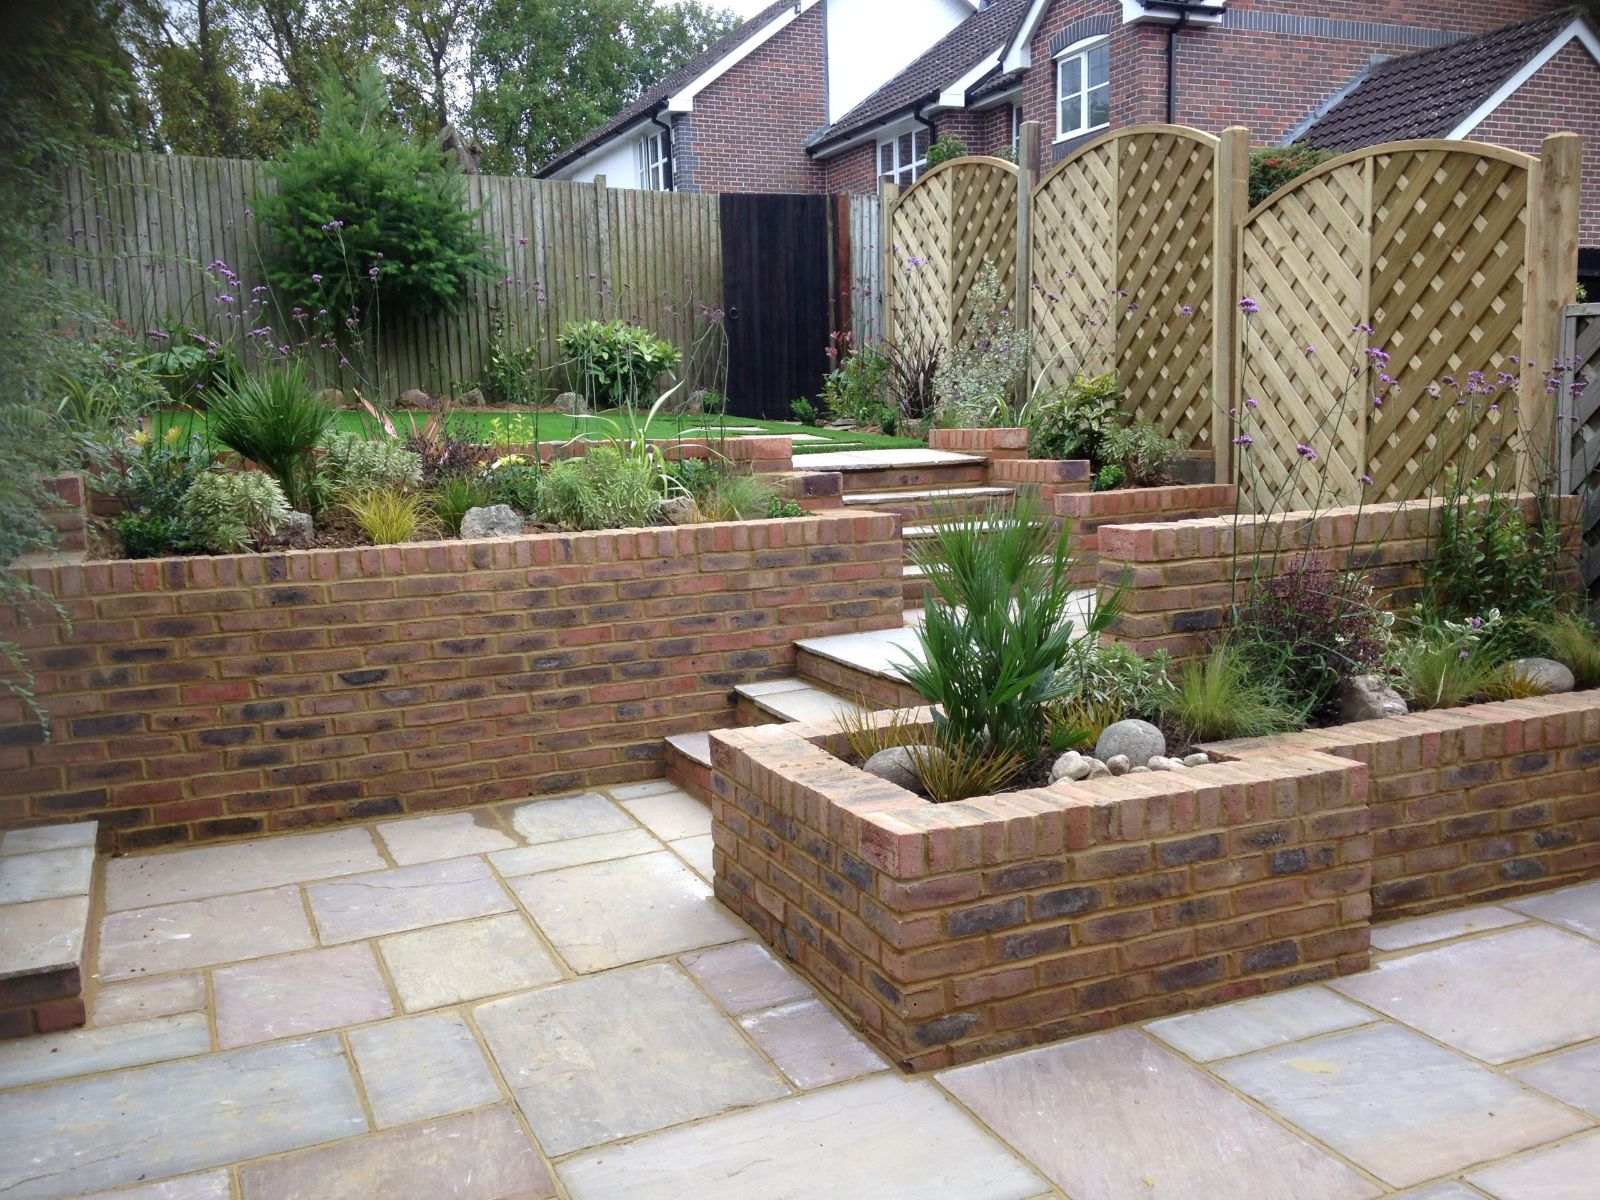 Landscaped garden in the horsham area